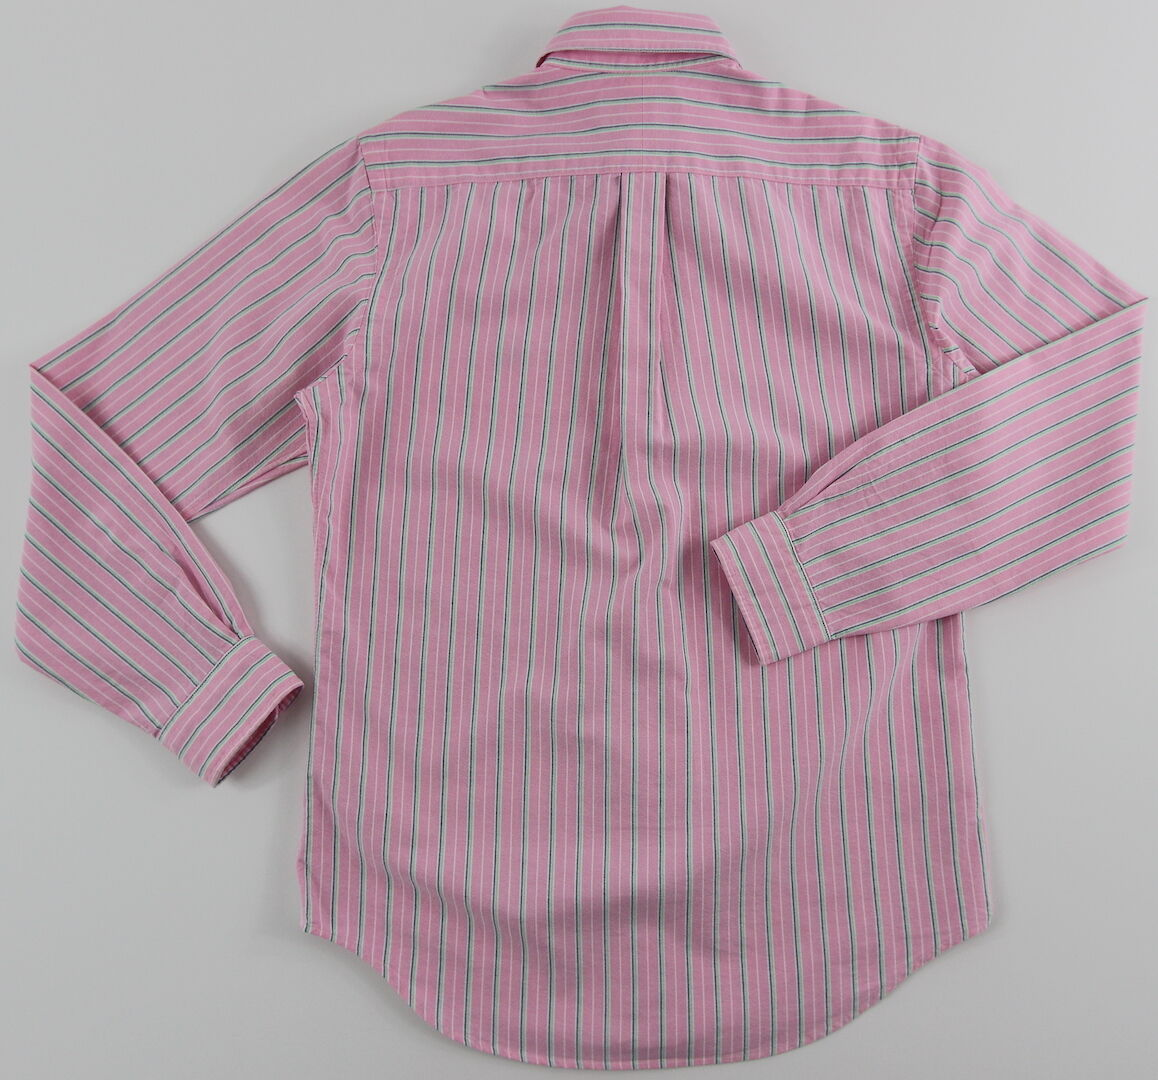 Uomo's RALPH Striped LAUREN rosa Striped RALPH Oxford Cotton Shirt Large L NWT NEW  89+ Nice! 180178